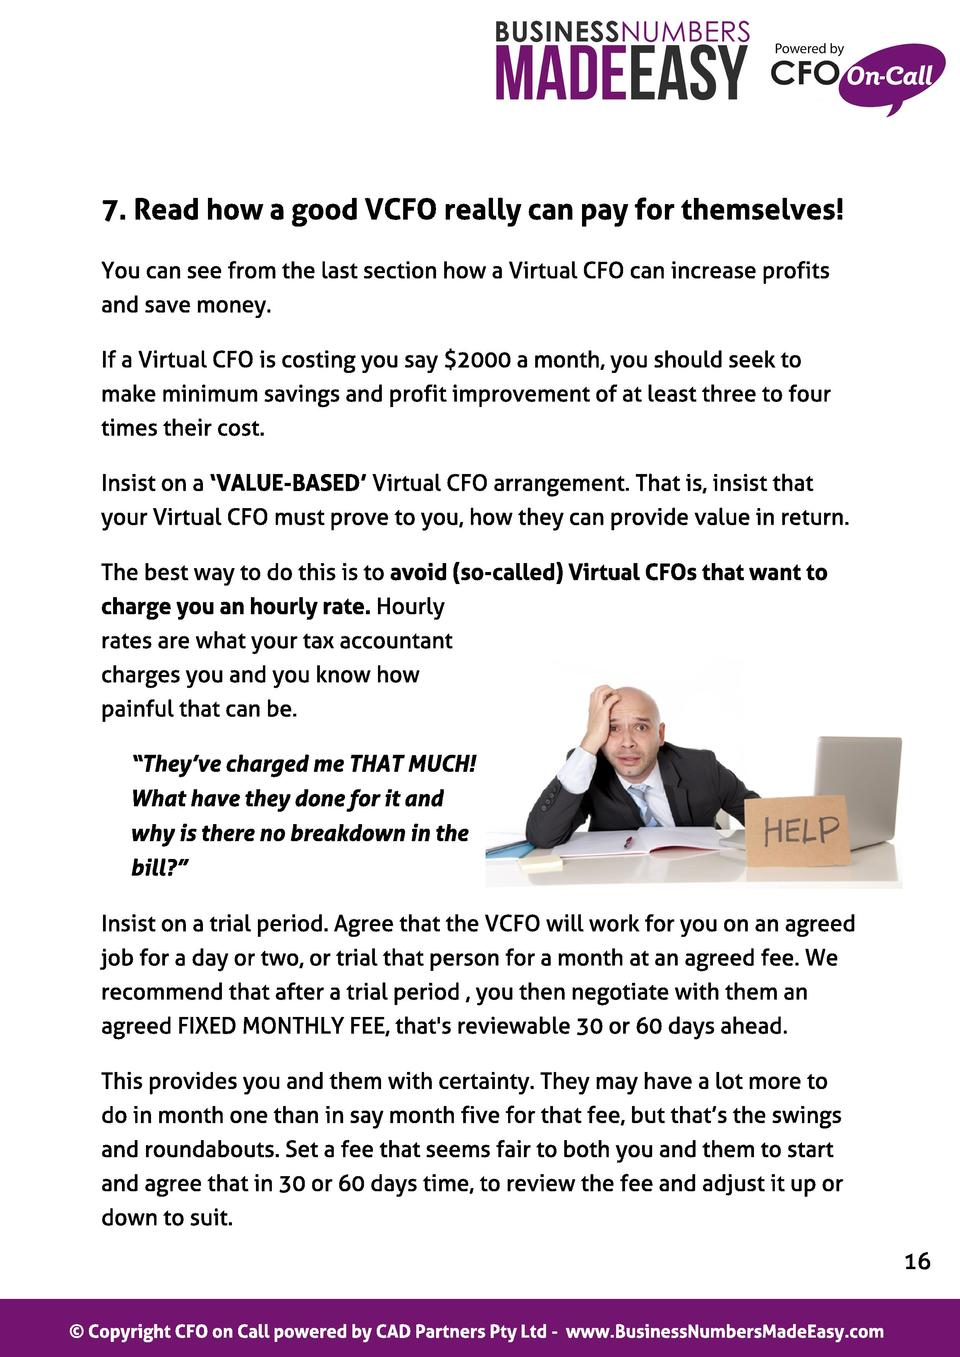 7. Read how a good VCFO real l y can pay f or t hemsel ves  You can see from the last section how a Virtual CFO can increa...